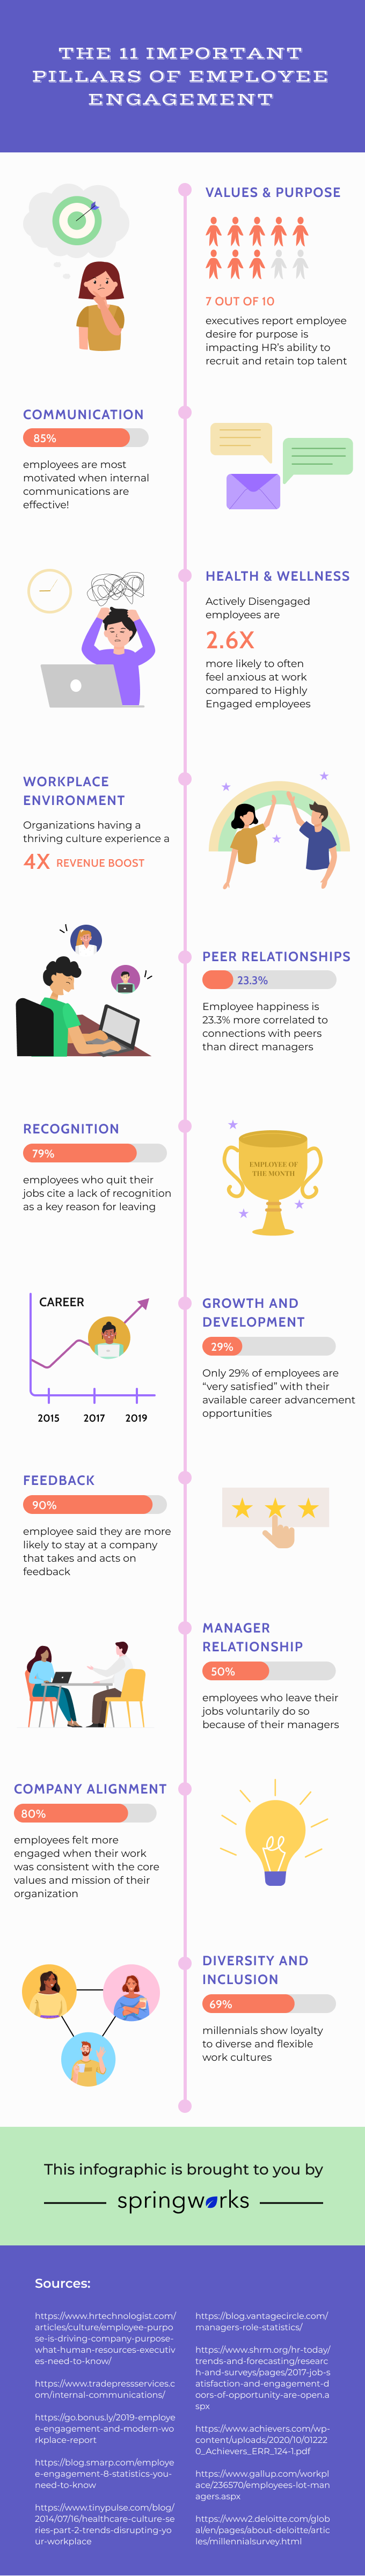 11 important pillars of employee engagement infographic